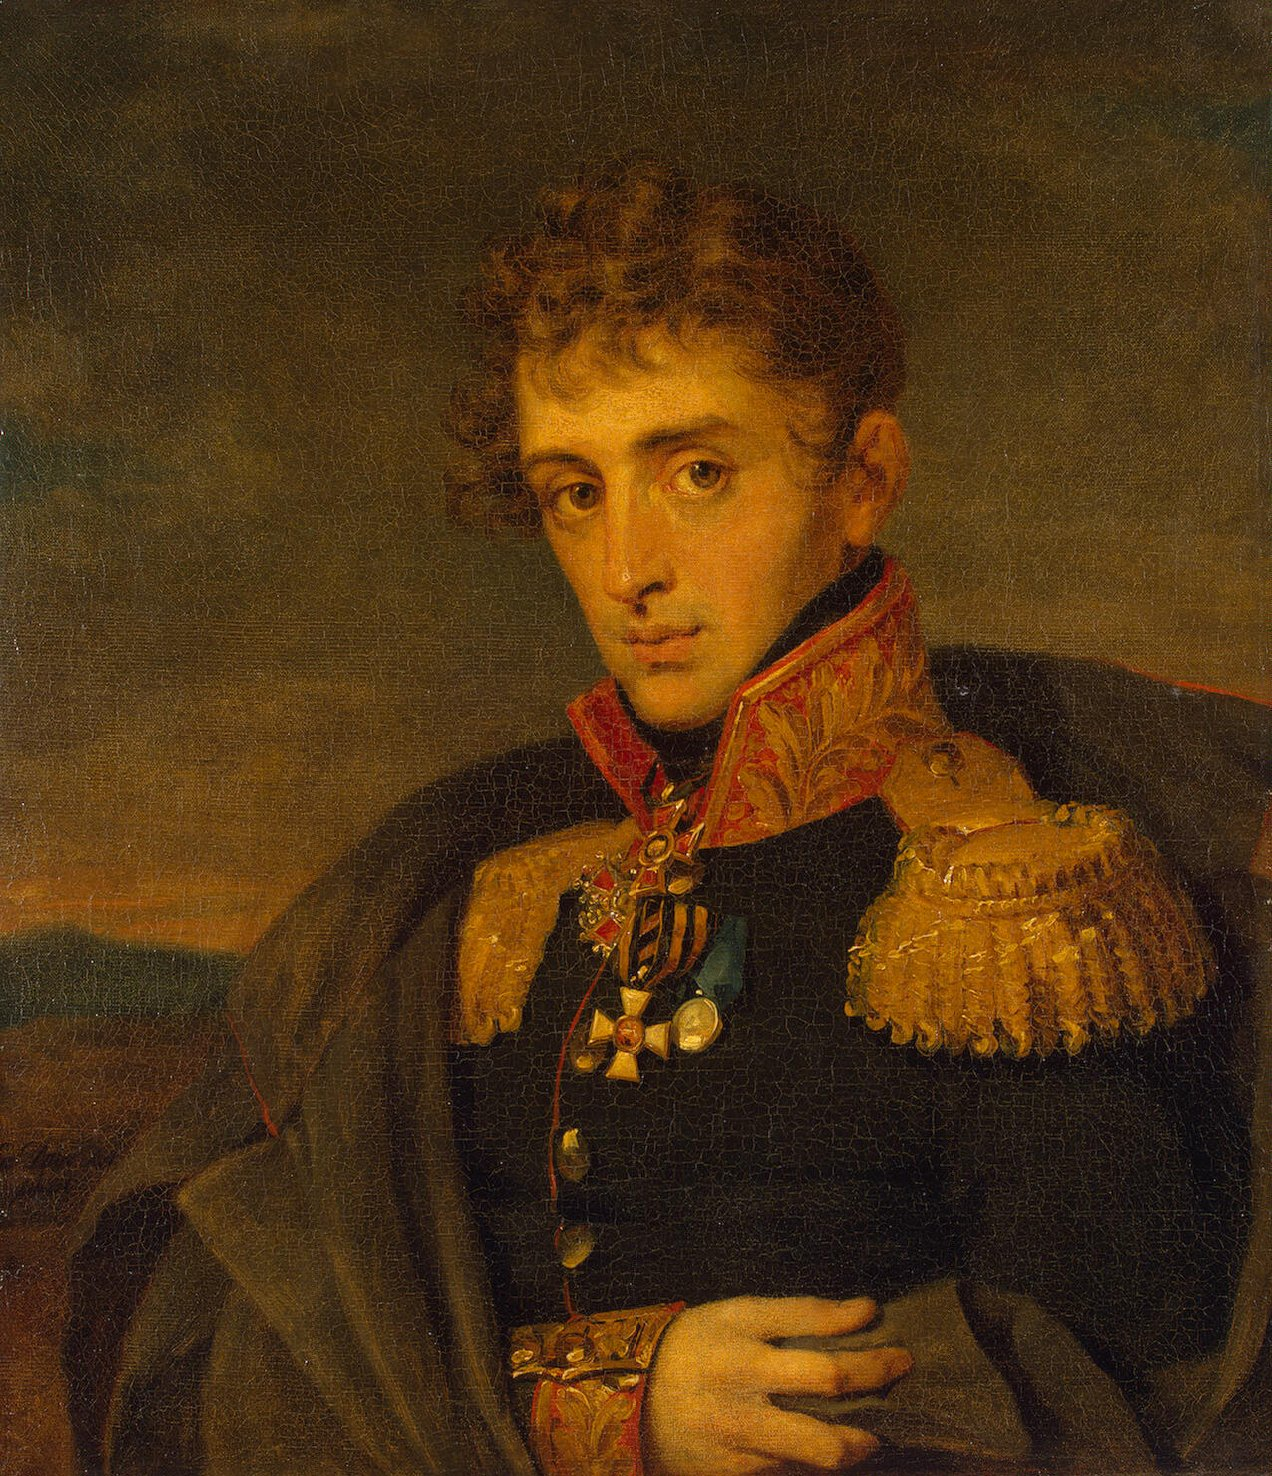 http://upload.wikimedia.org/wikipedia/commons/9/94/Tuchkov-4th_A_A_by_Daw.jpg?uselang=ru